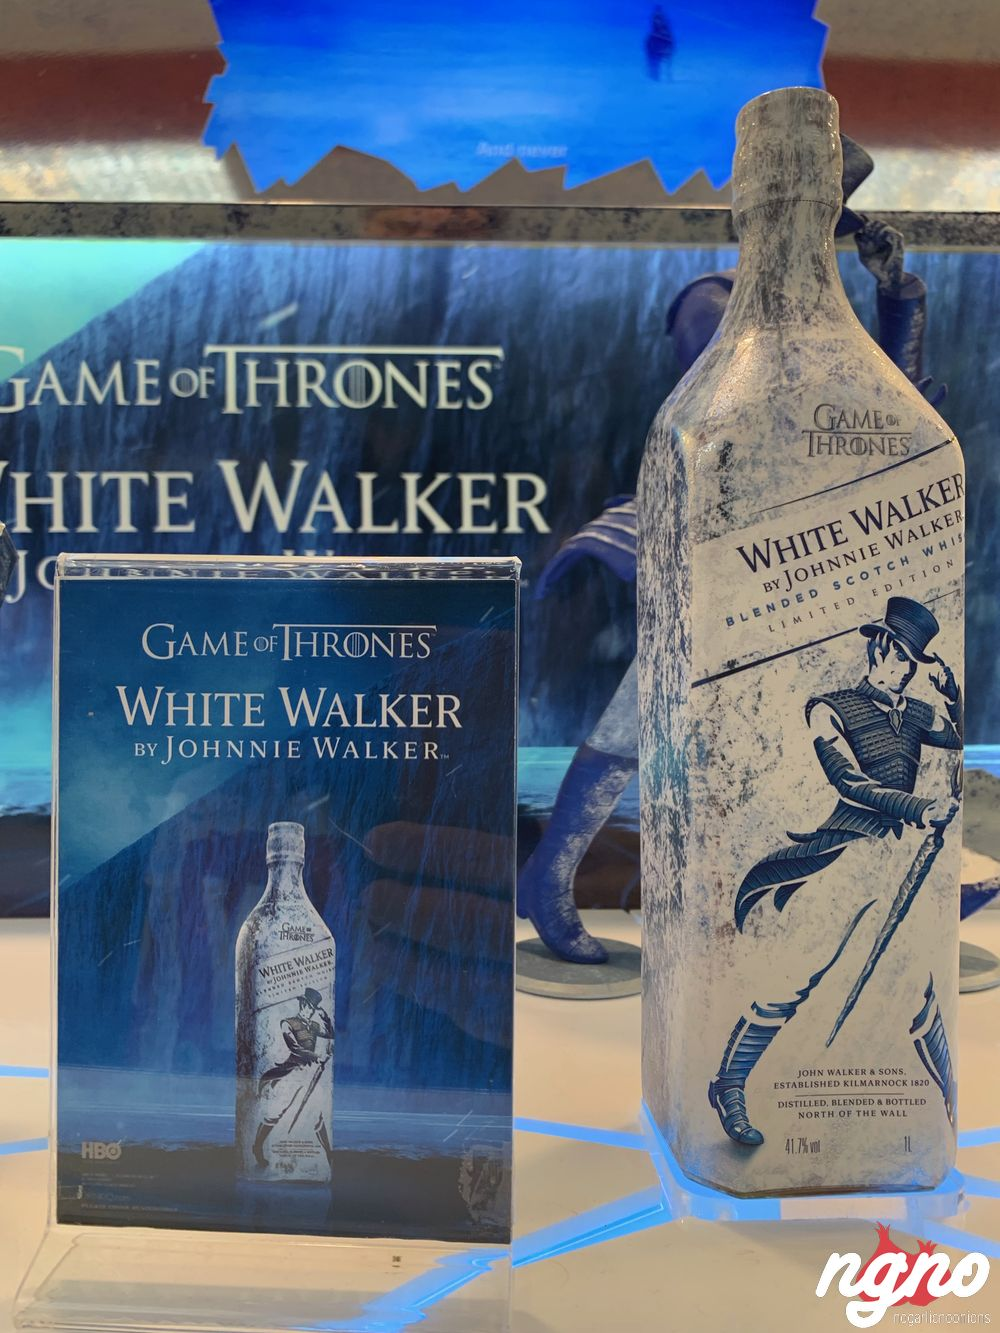 johnnie-walker-game-of-thrones-nogarlicnoonions-52019-01-20-04-55-21